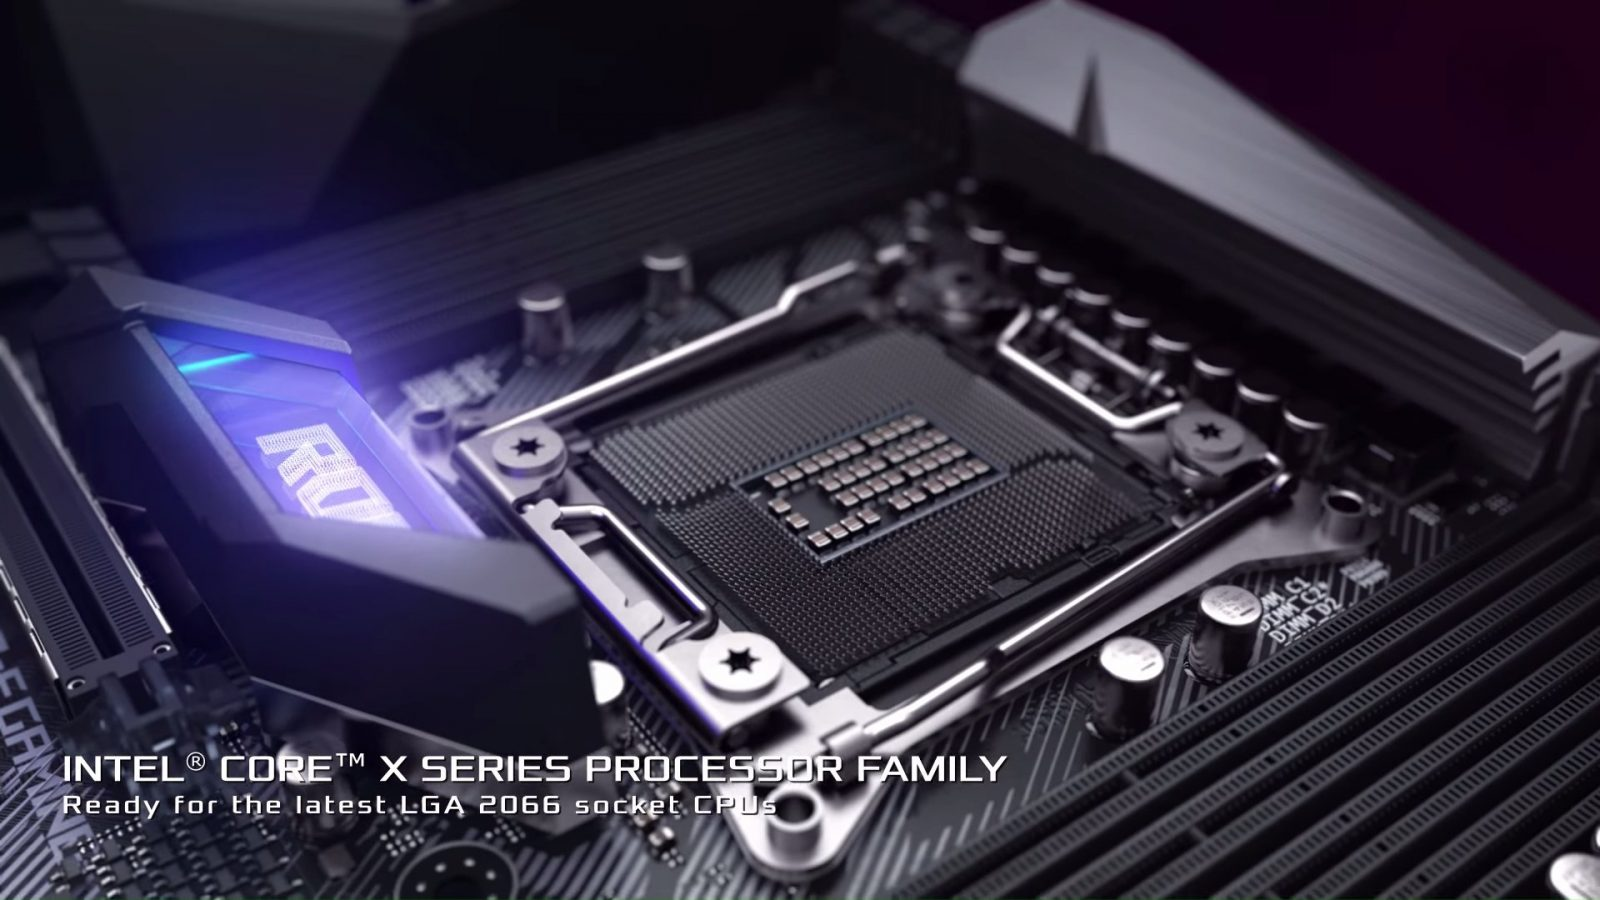 Asus Teased Its Upcoming Products That Will Be Unveiled At